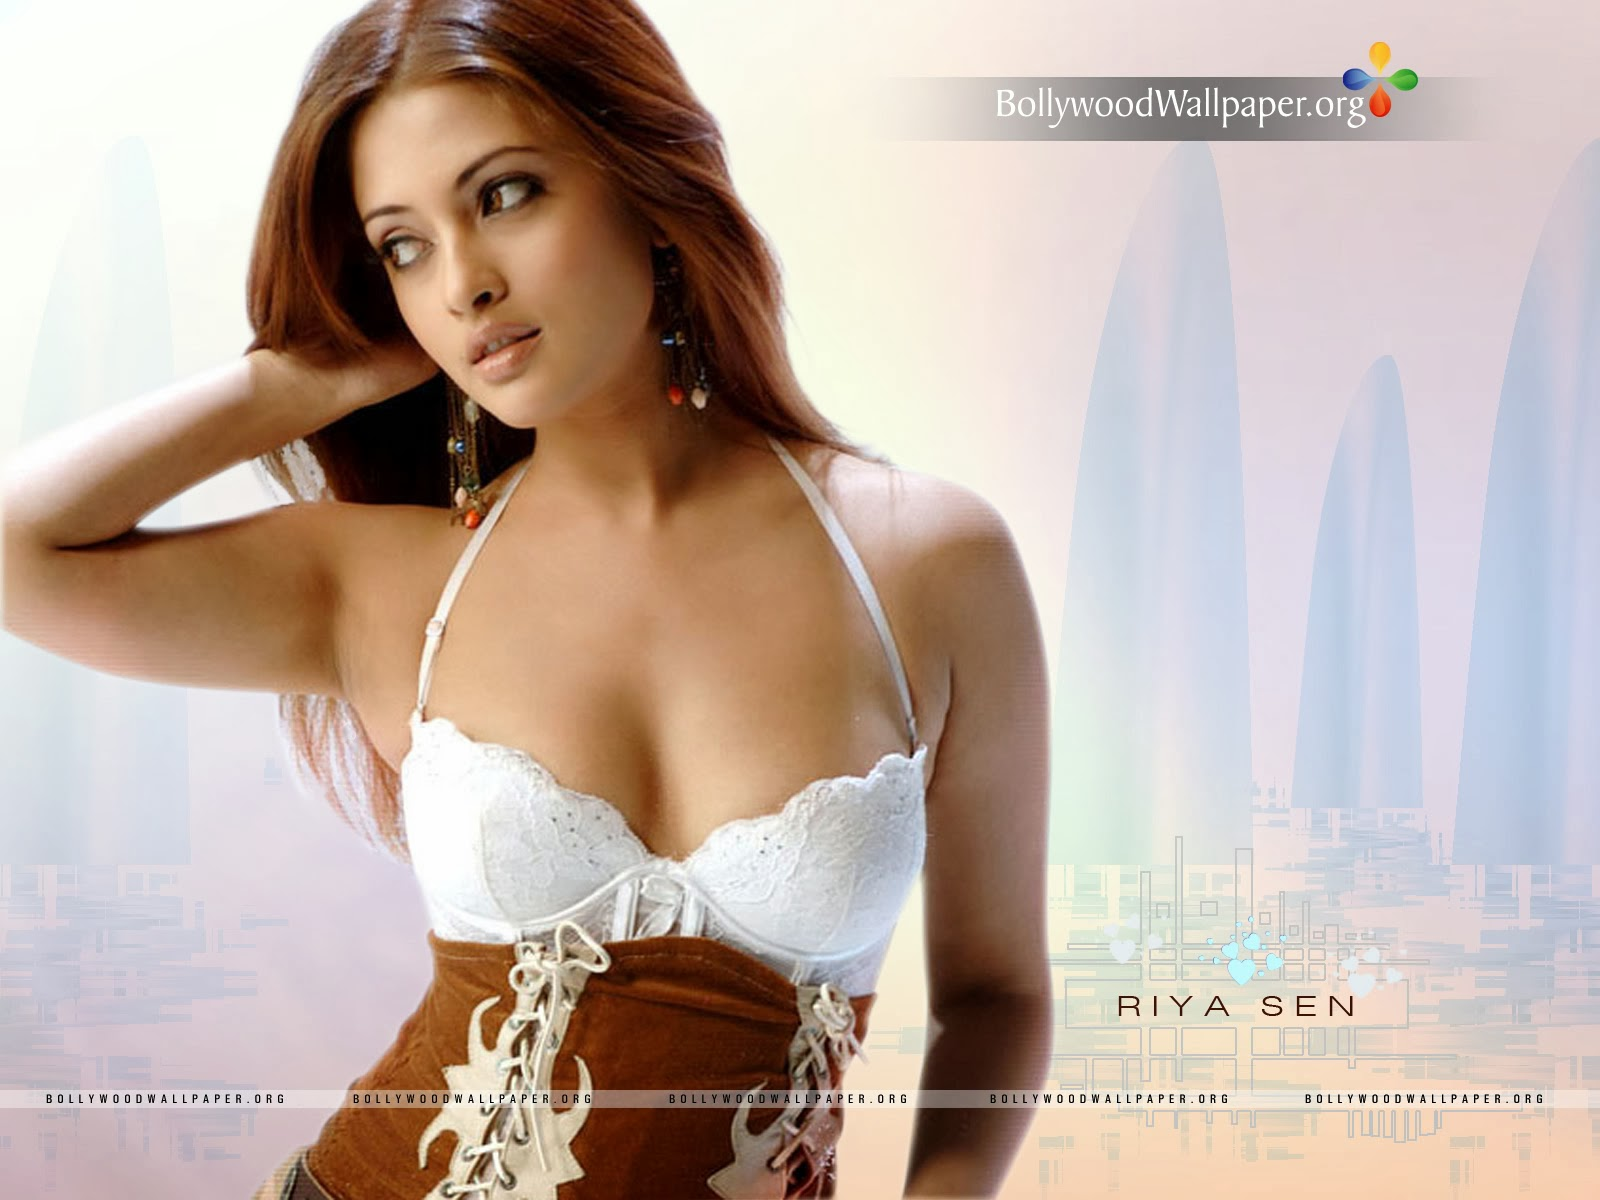 Hot bra pic hd